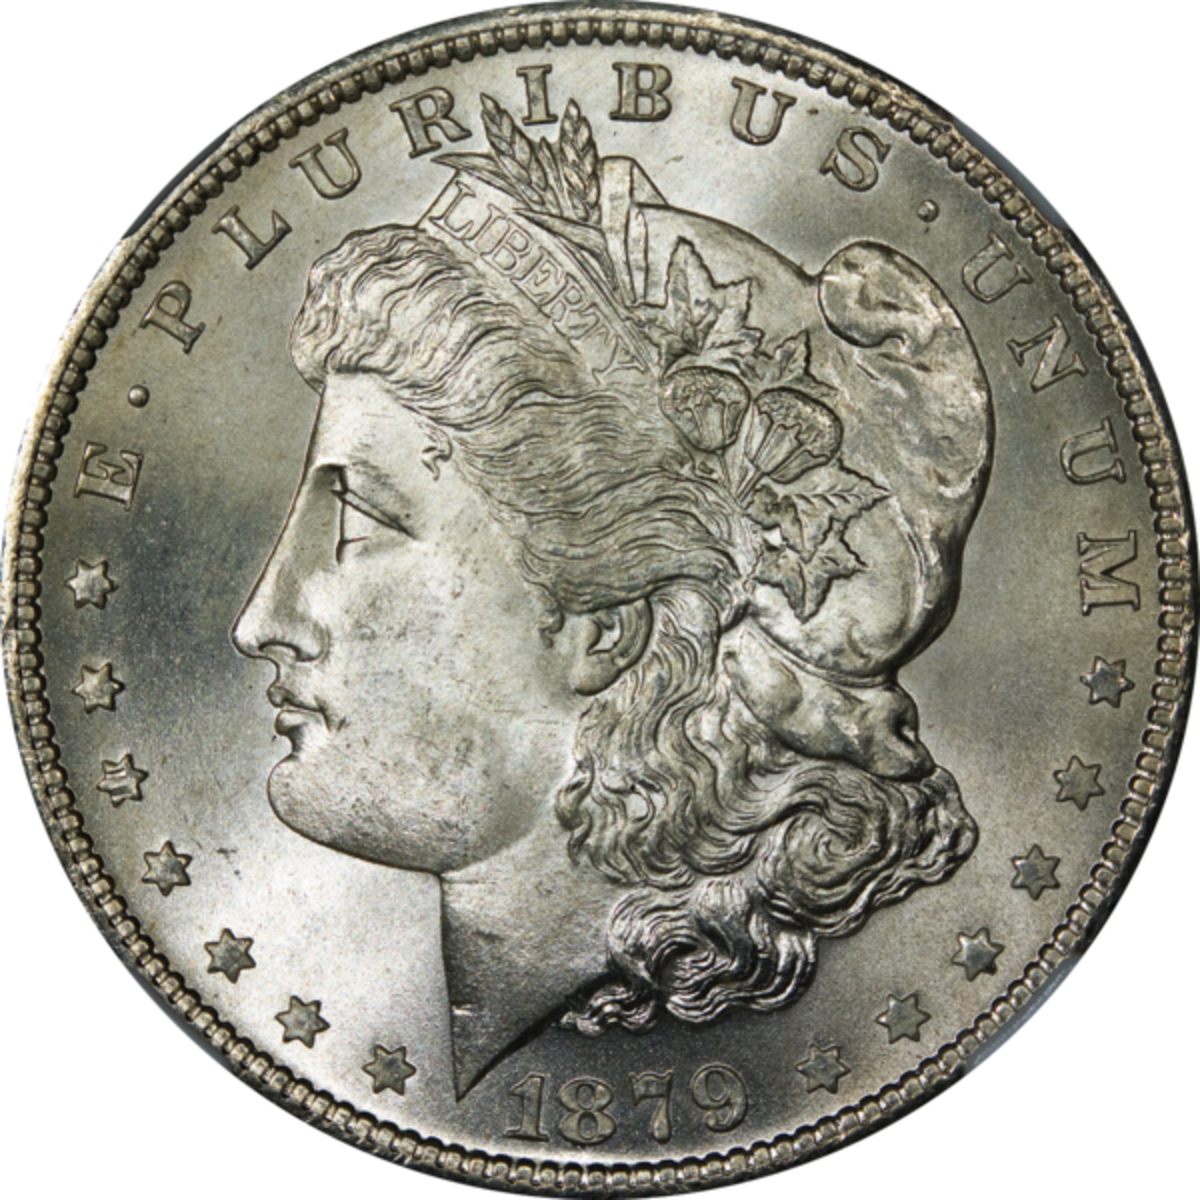 An 1879 Morgan Silver Dollar